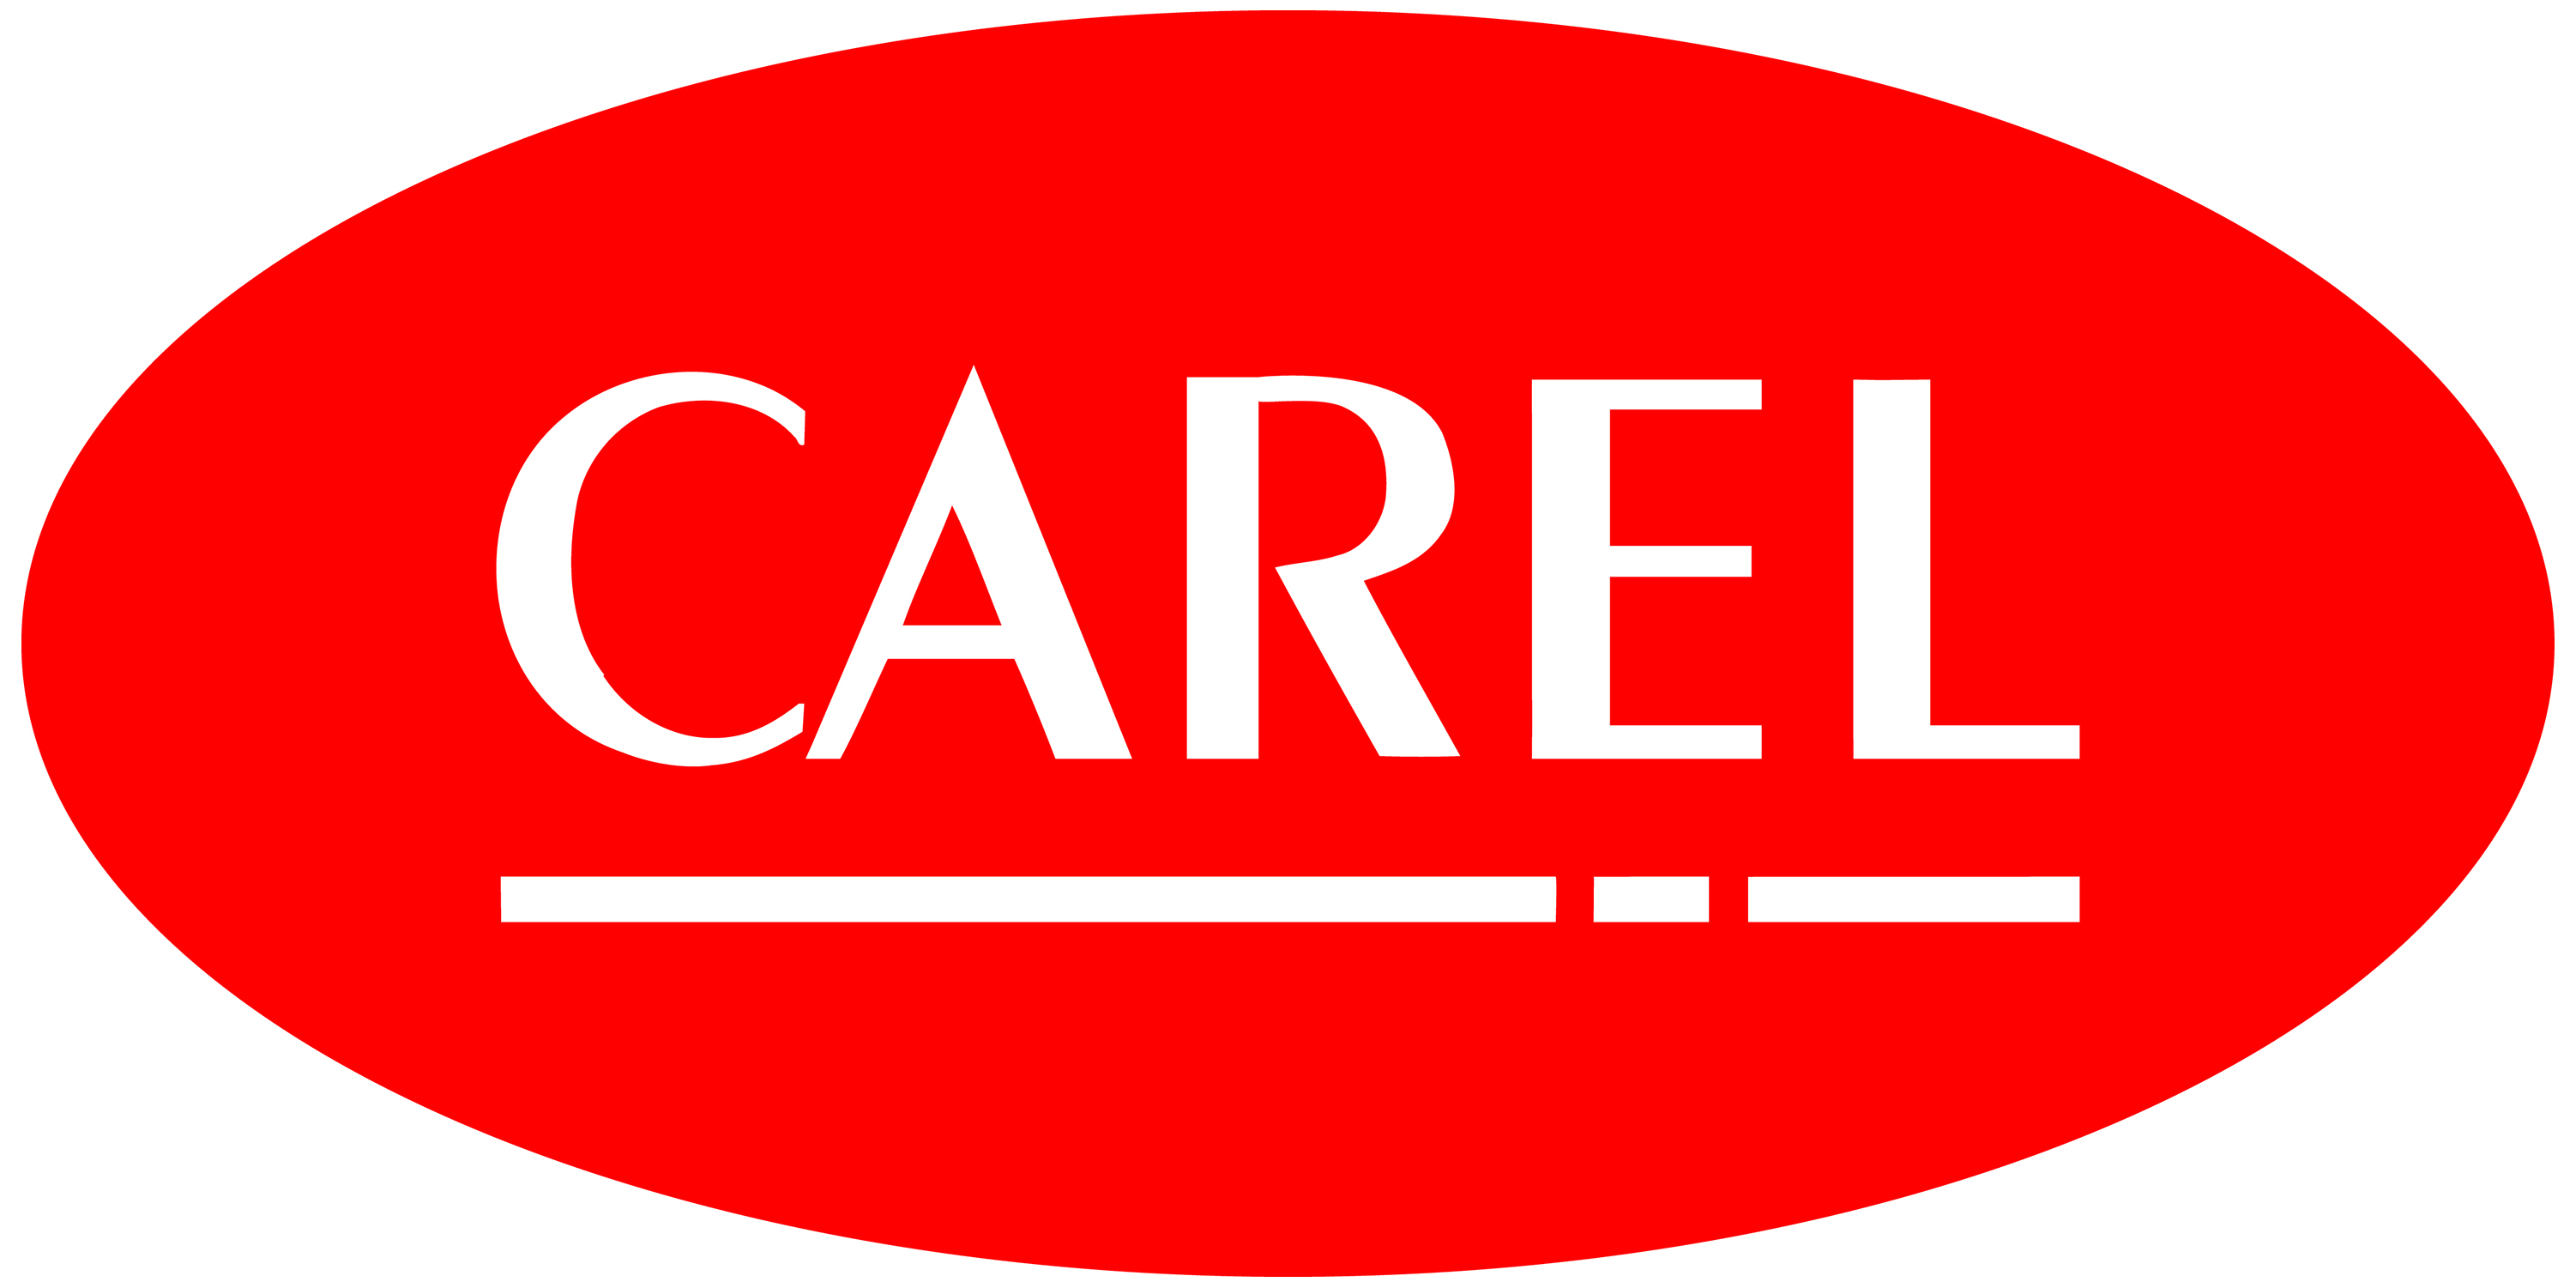 CAREL - Investor & Governance